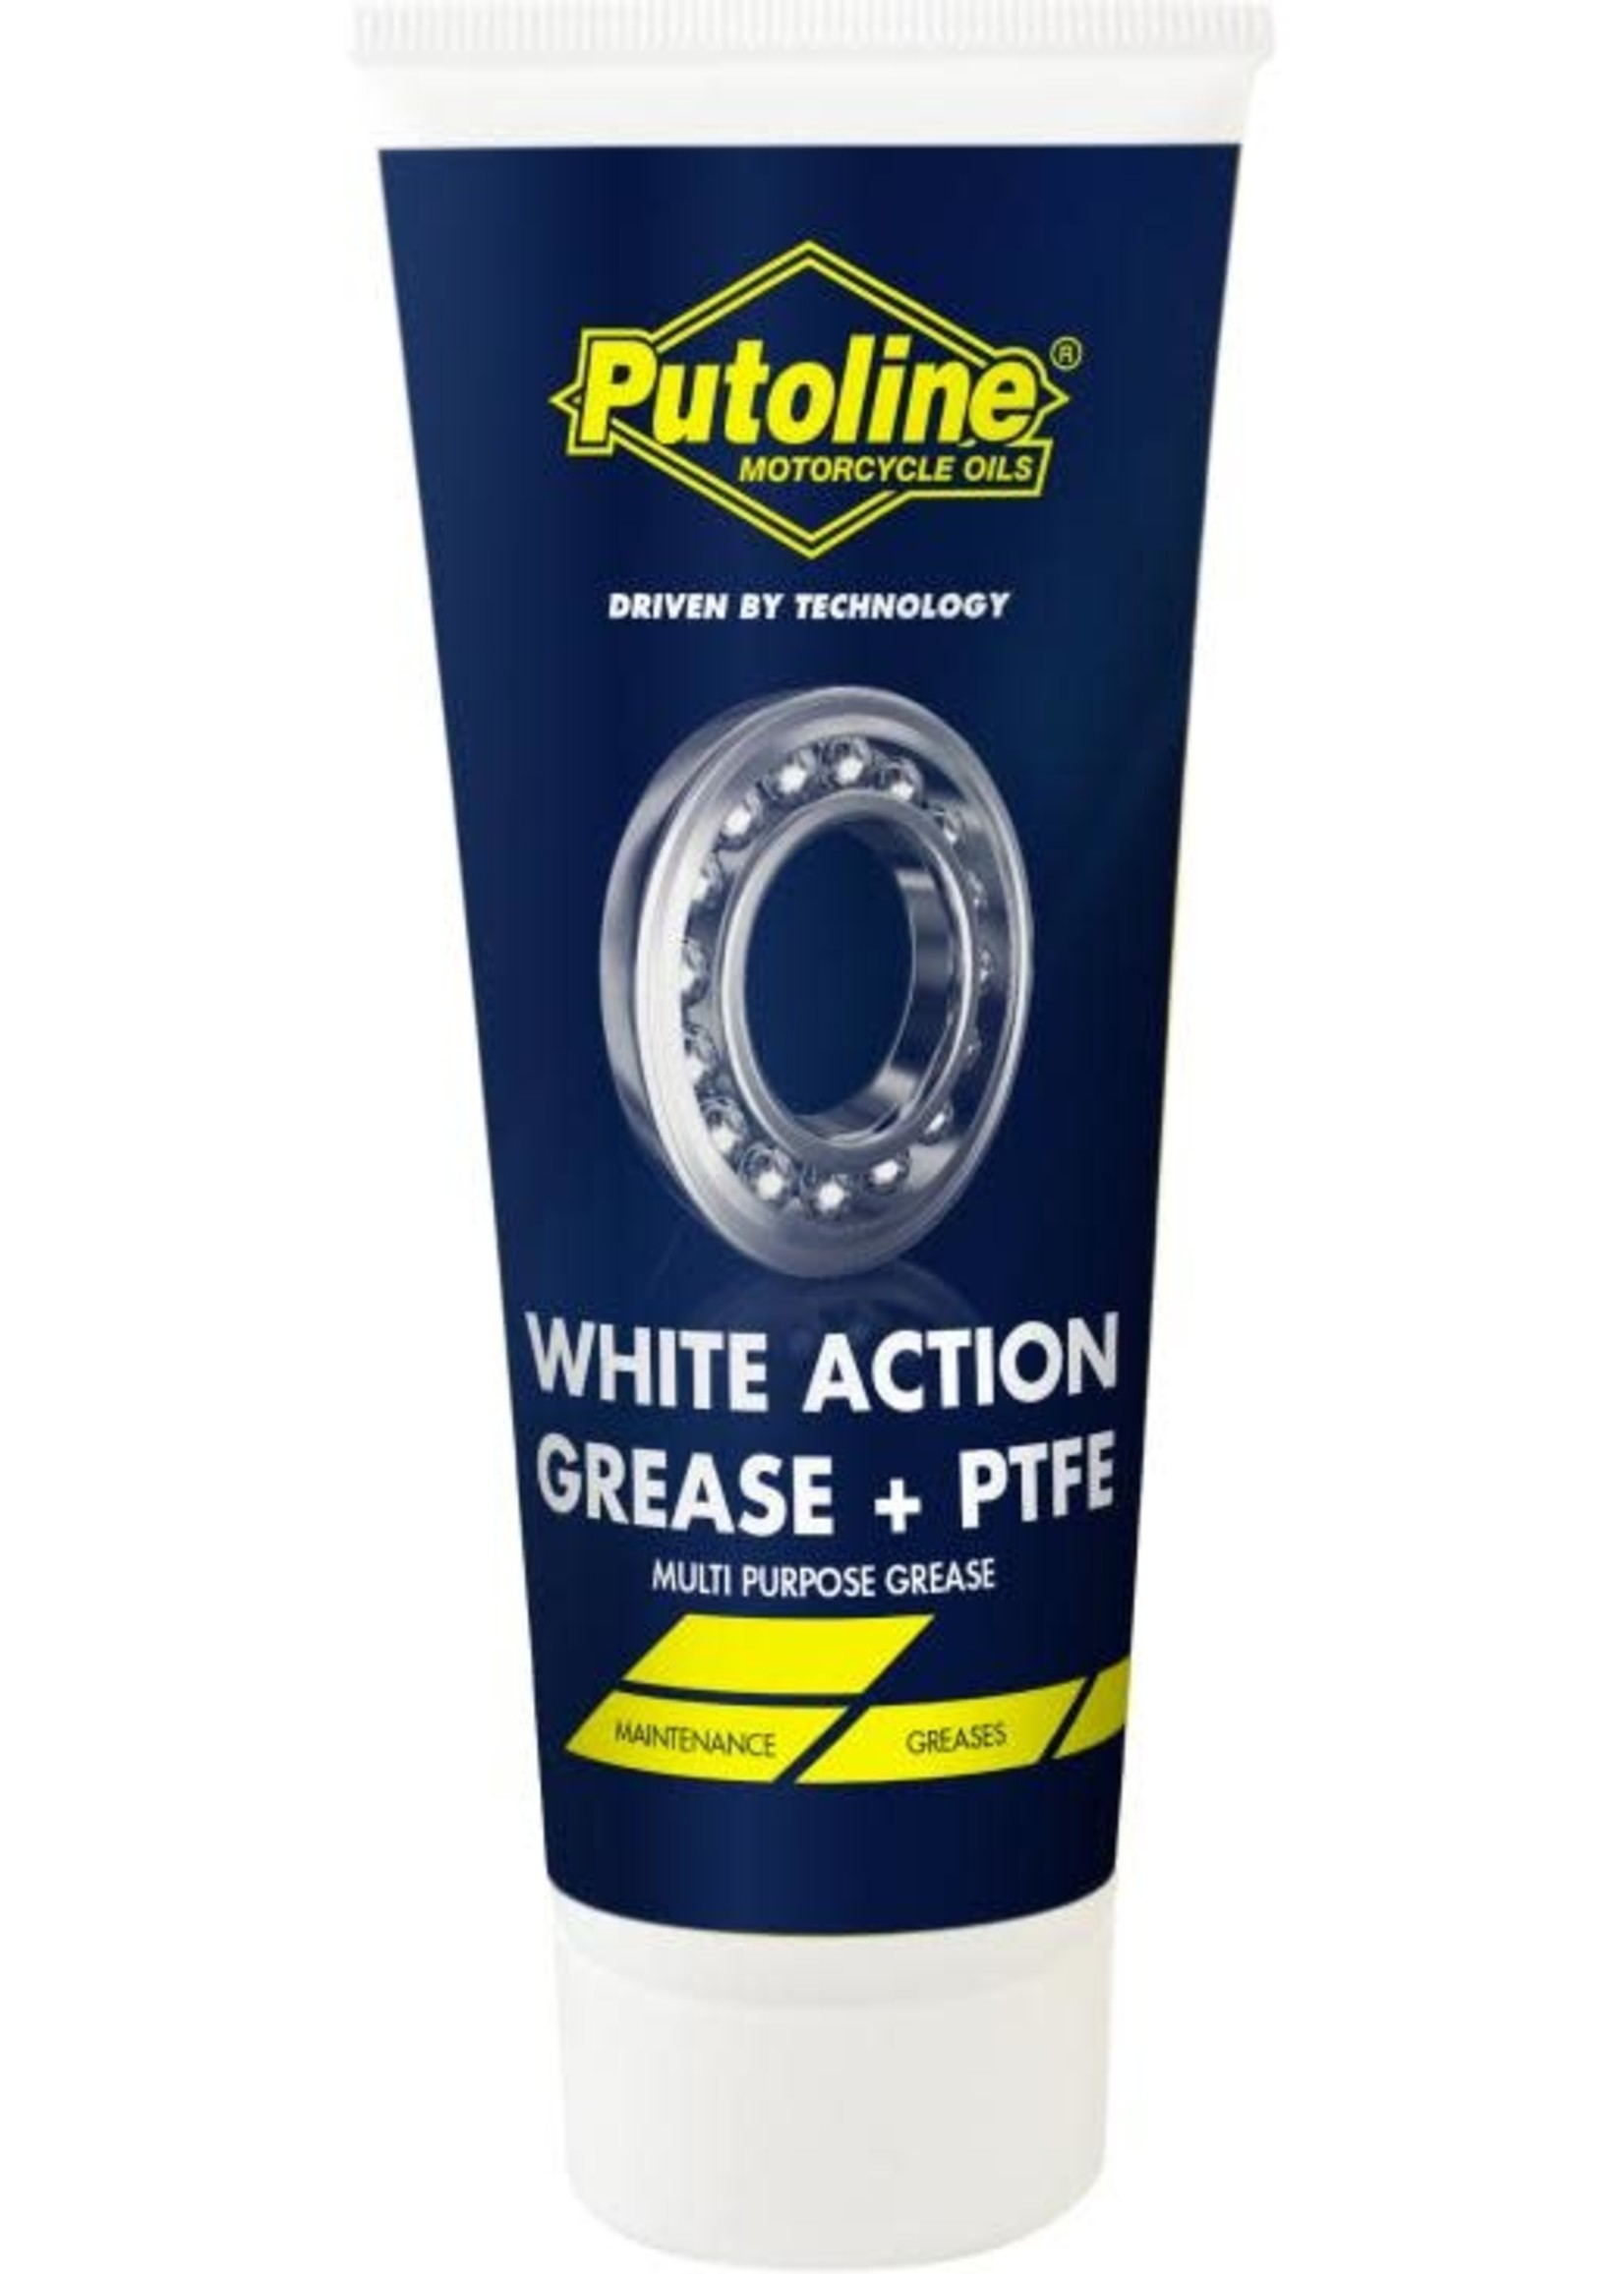 Putoline WHITE ACTION GREASE + PTFE 100G